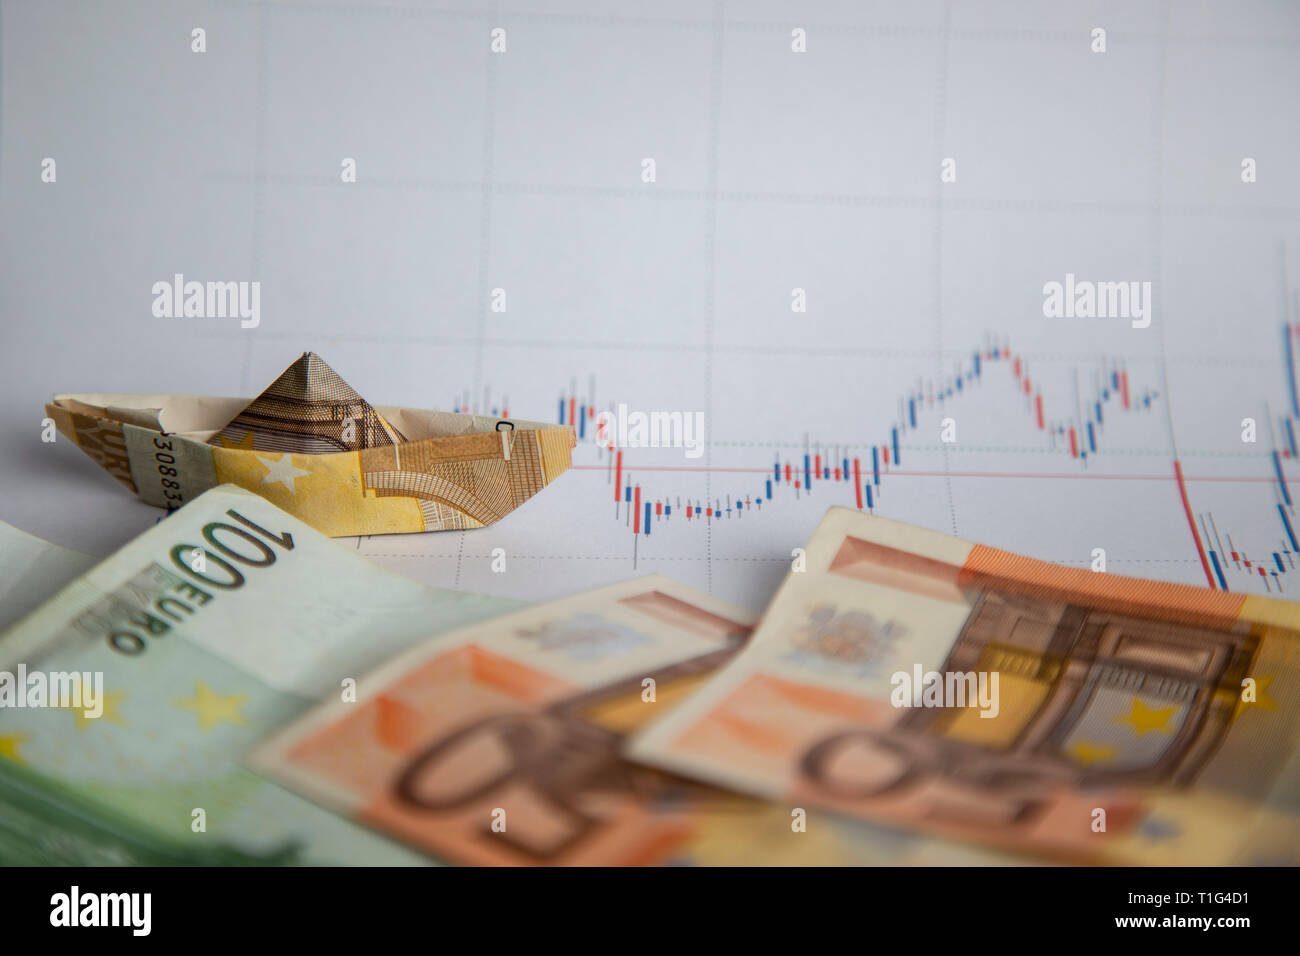 navigating with euros through the stock markets Stock Photo